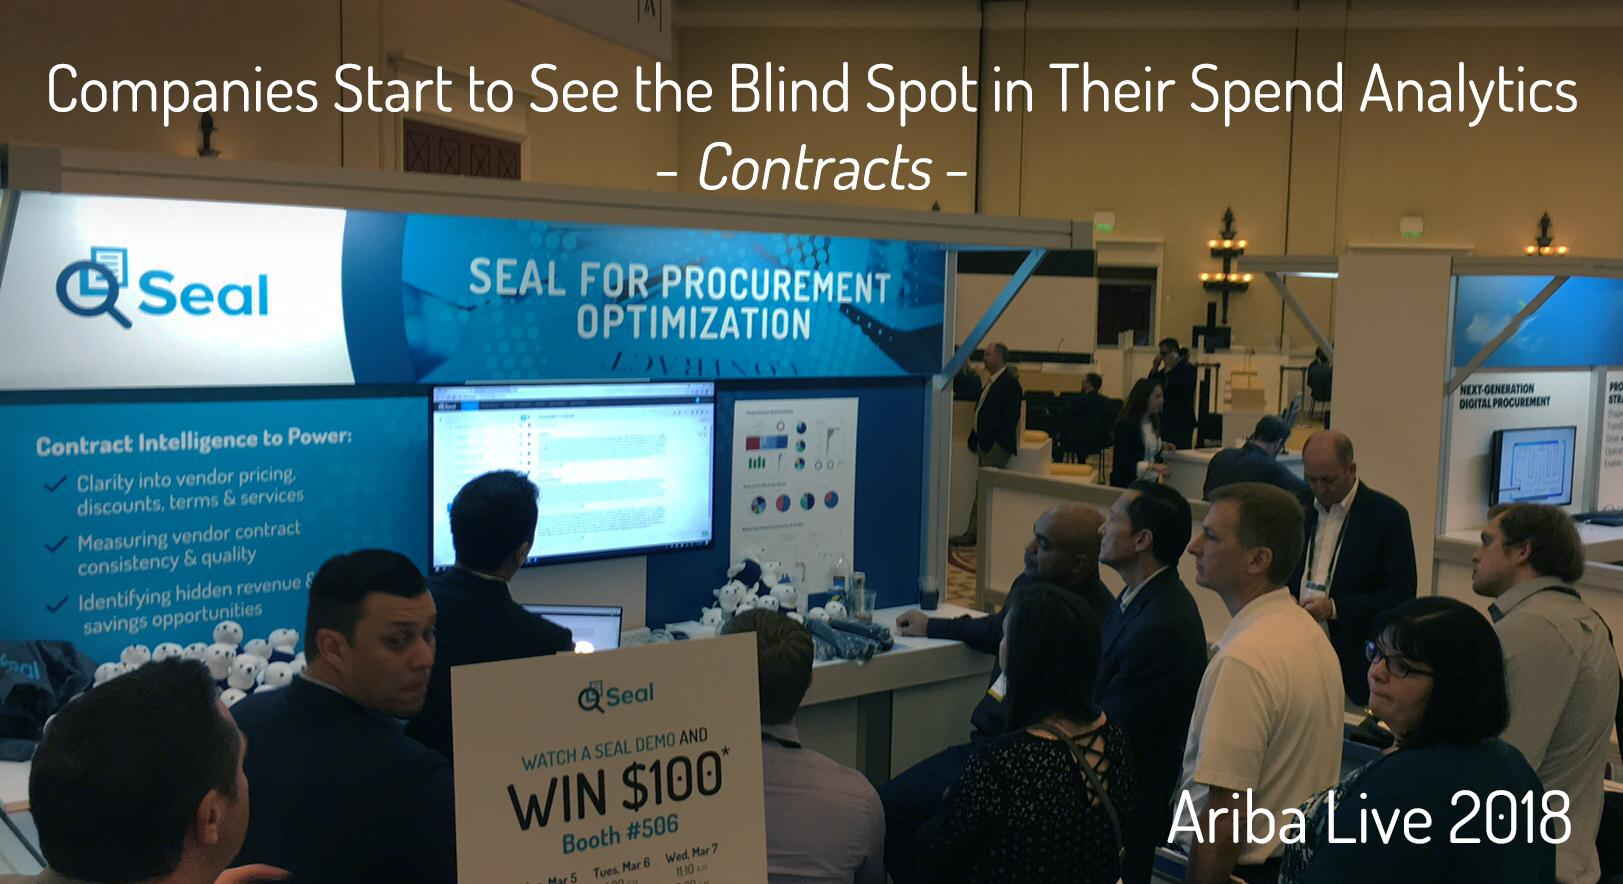 Ariba Live: Companies Start to See the Blind Spot in Their Spend Analytics: Contracts